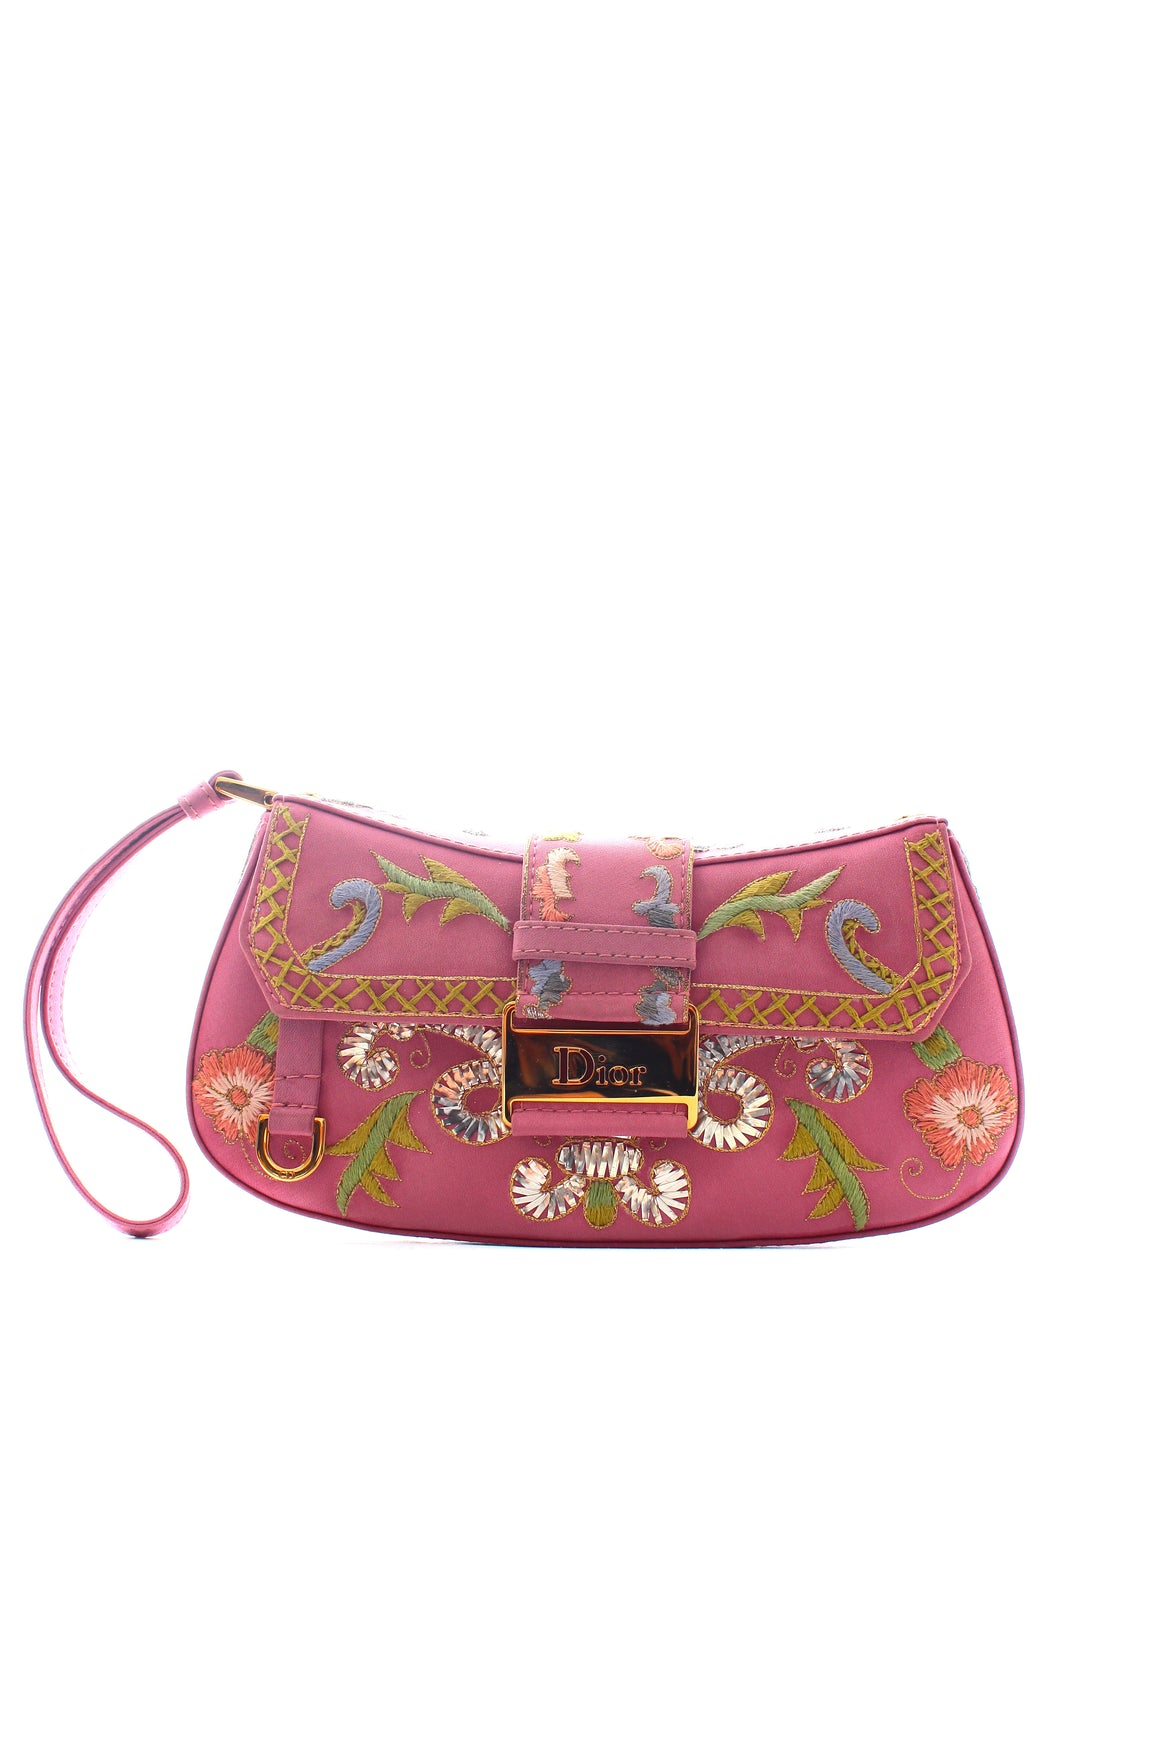 Dior Limited Edition Columbus Embroidered Wristlet Clutch